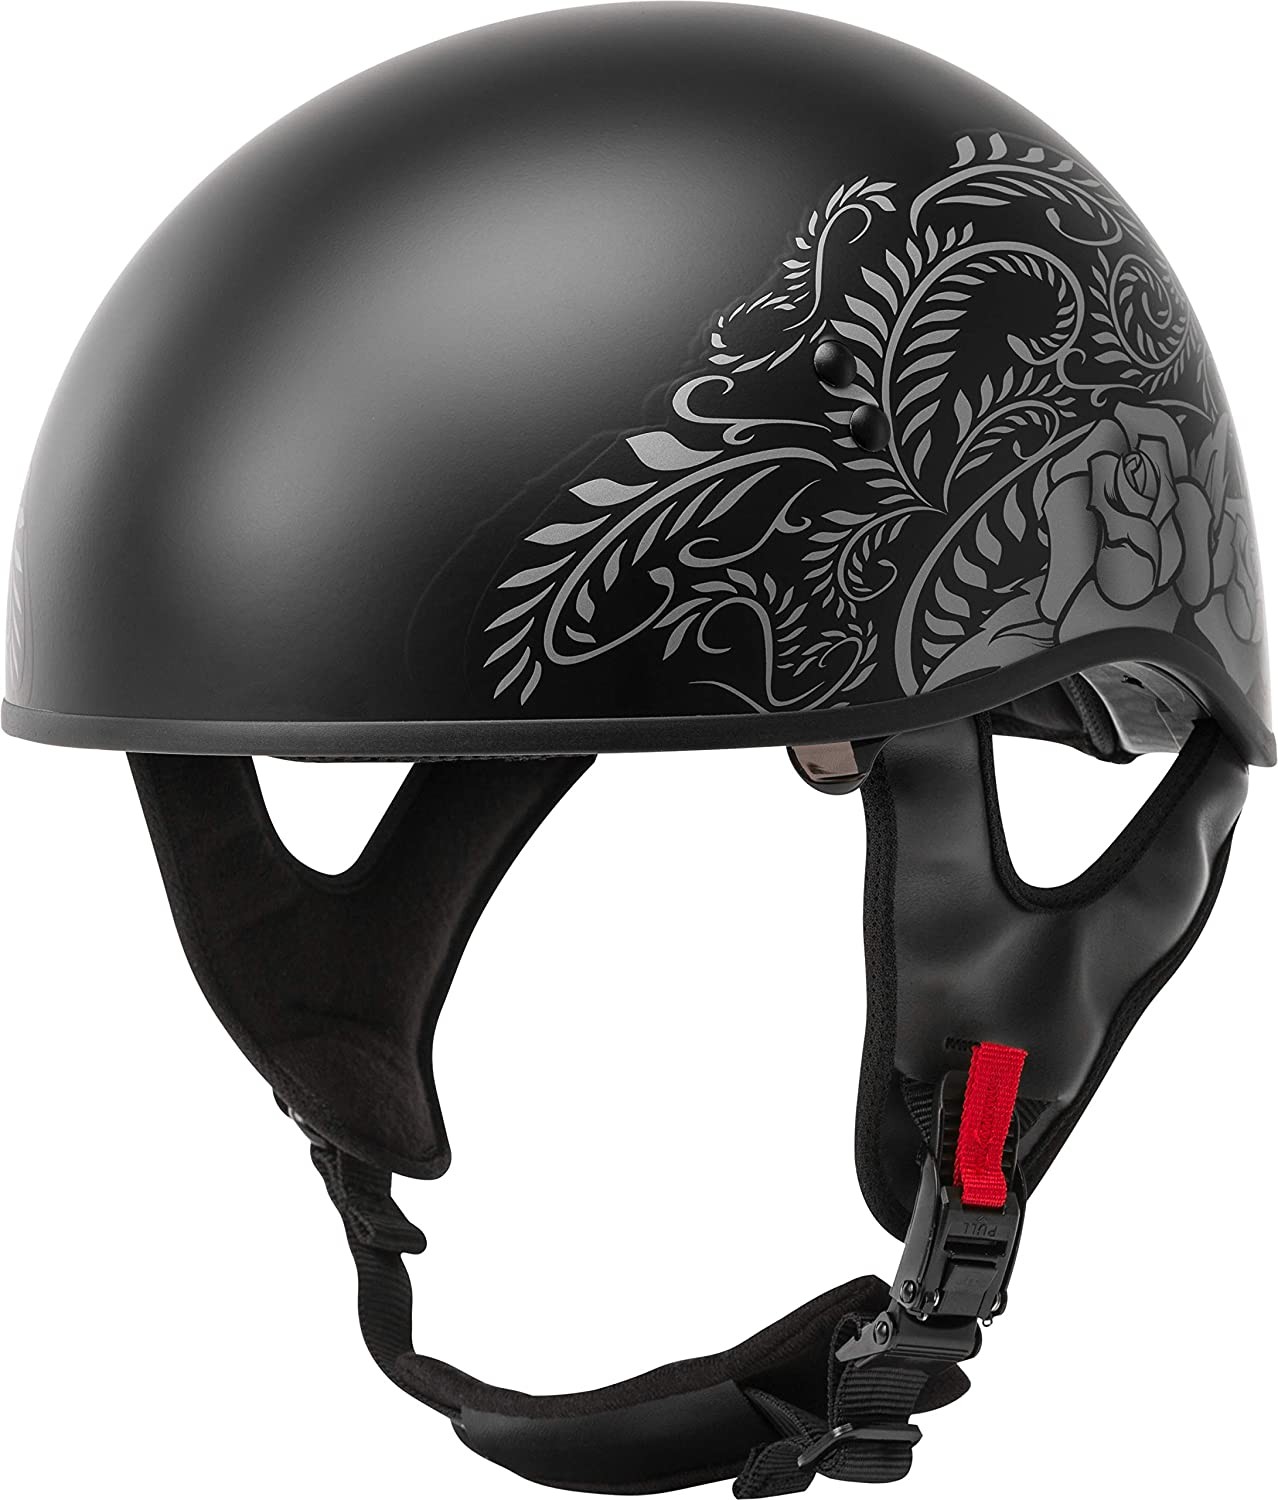 Gmax GM45 Naked Half Motorcycle Helmet Adult All Sizes All Colors